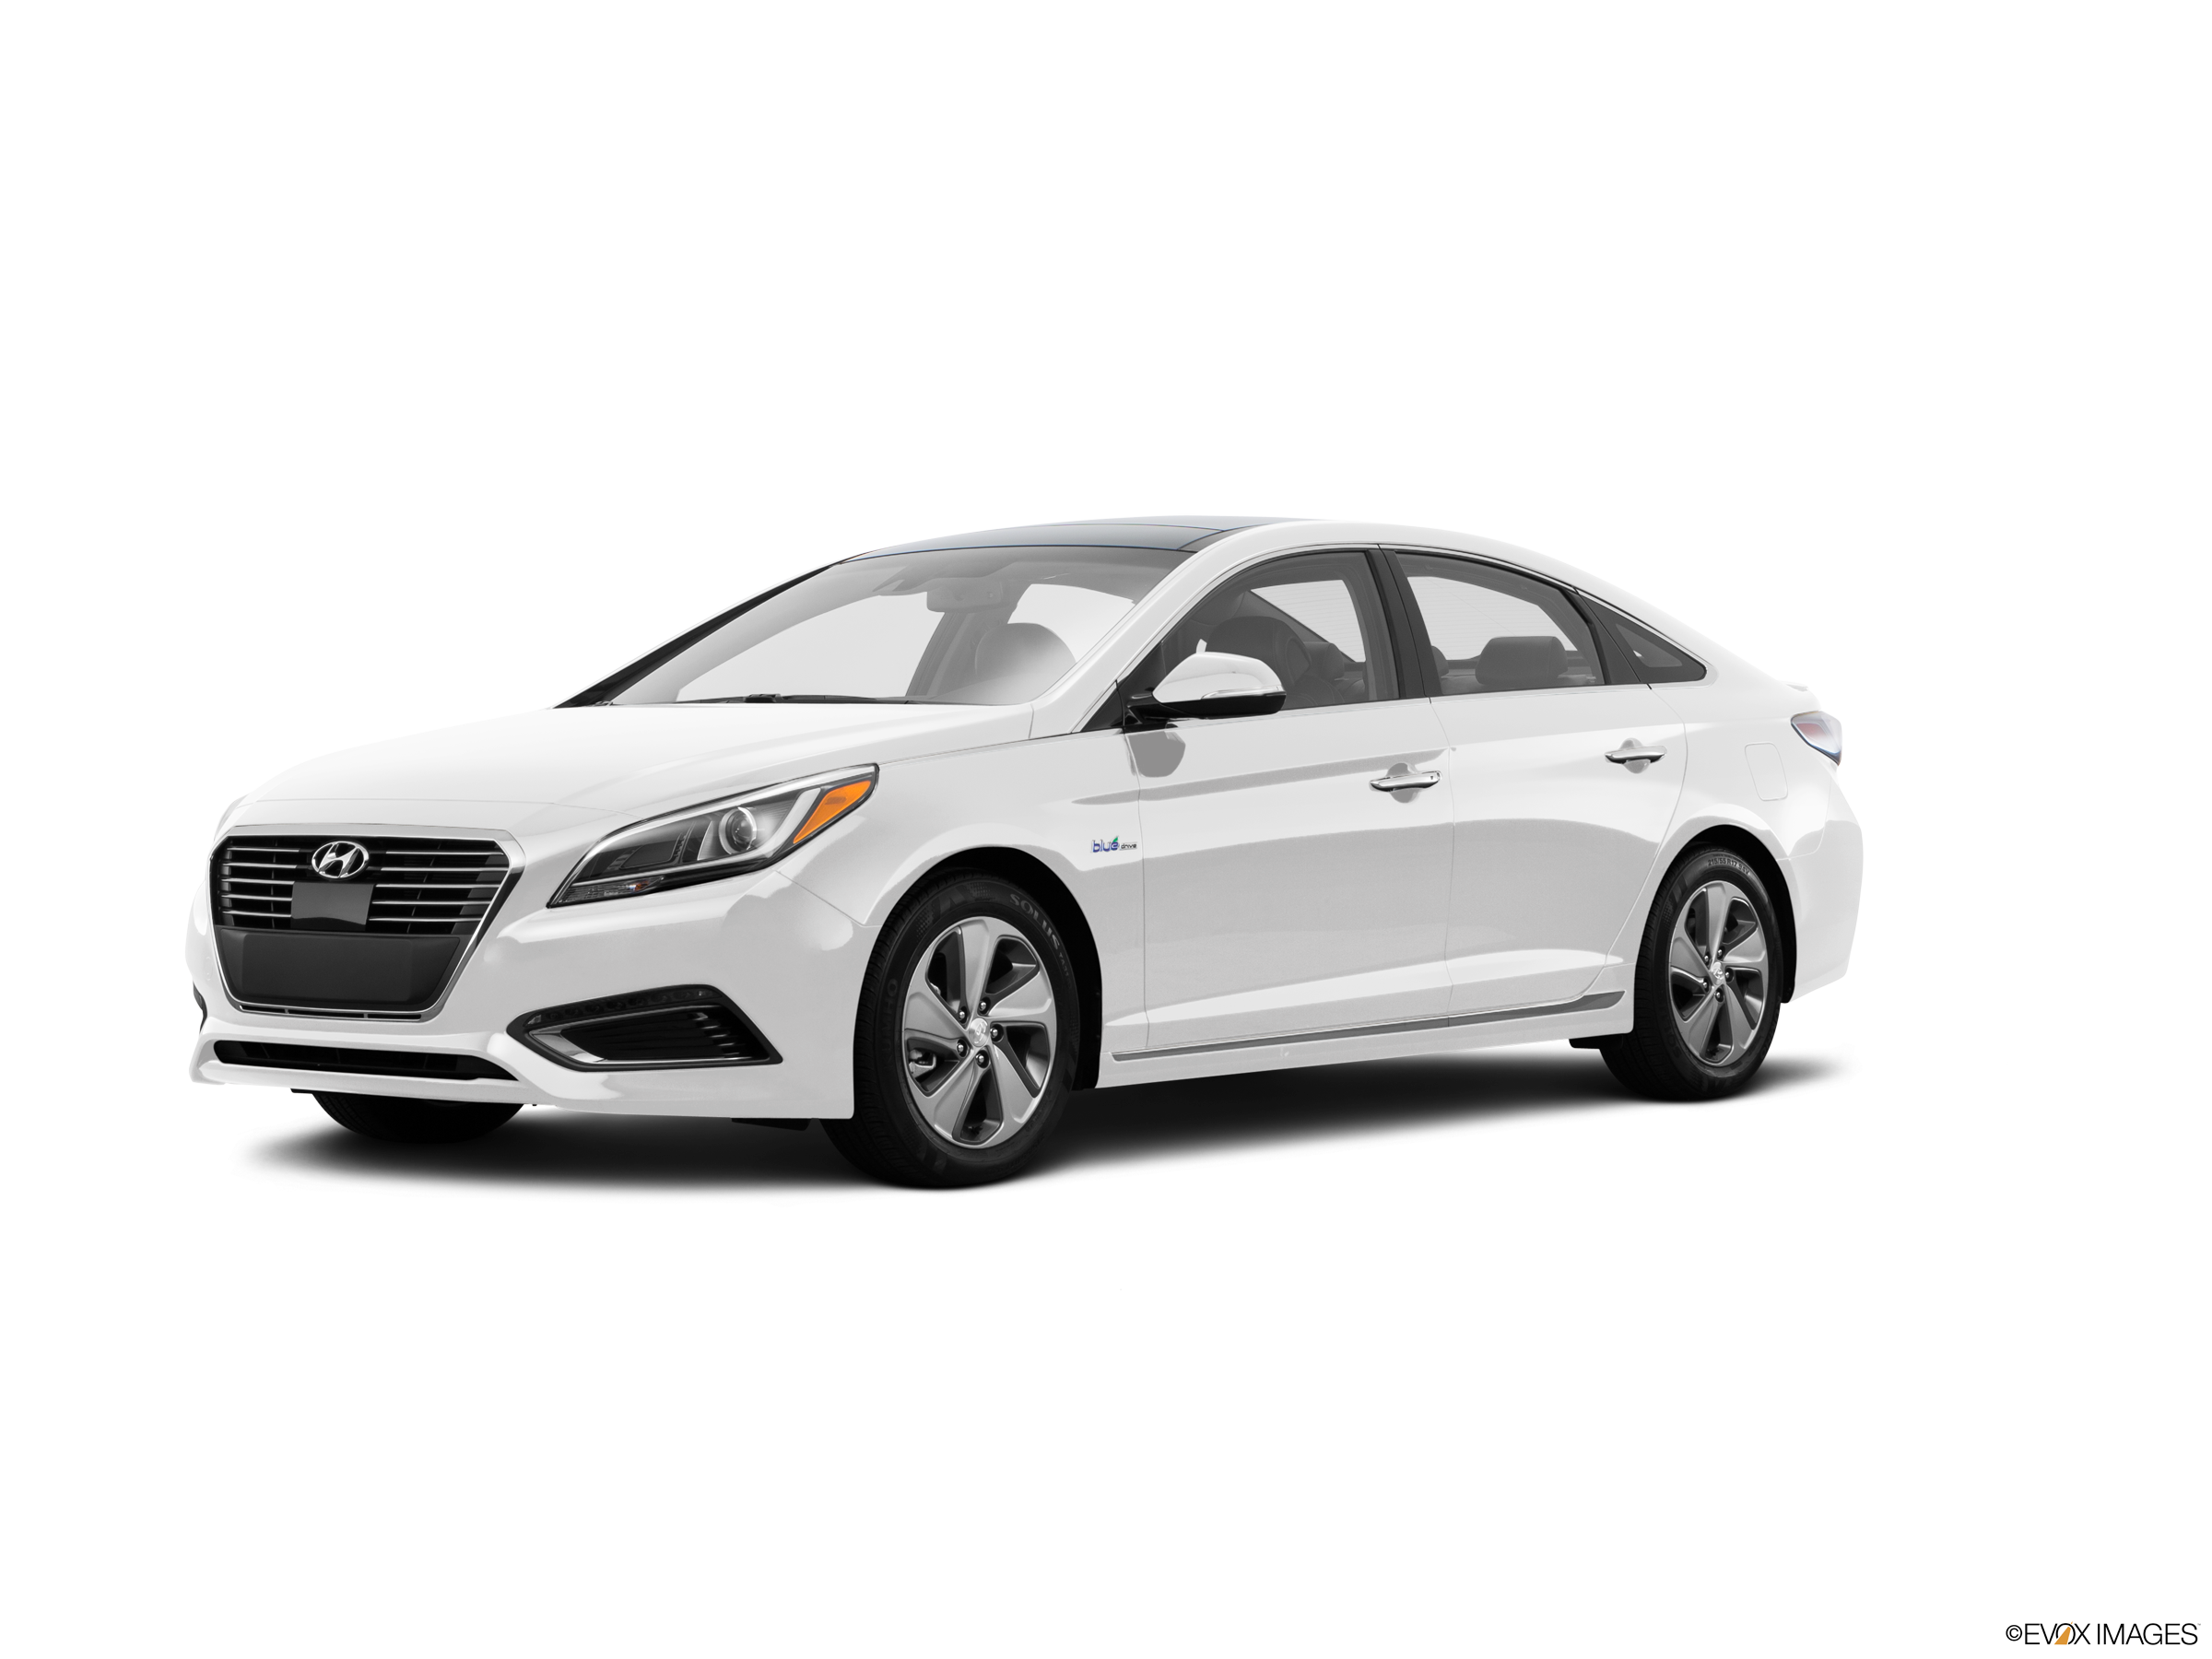 Most Fuel Efficient Hybrids of 2017 - 2017 Hyundai Sonata Hybrid